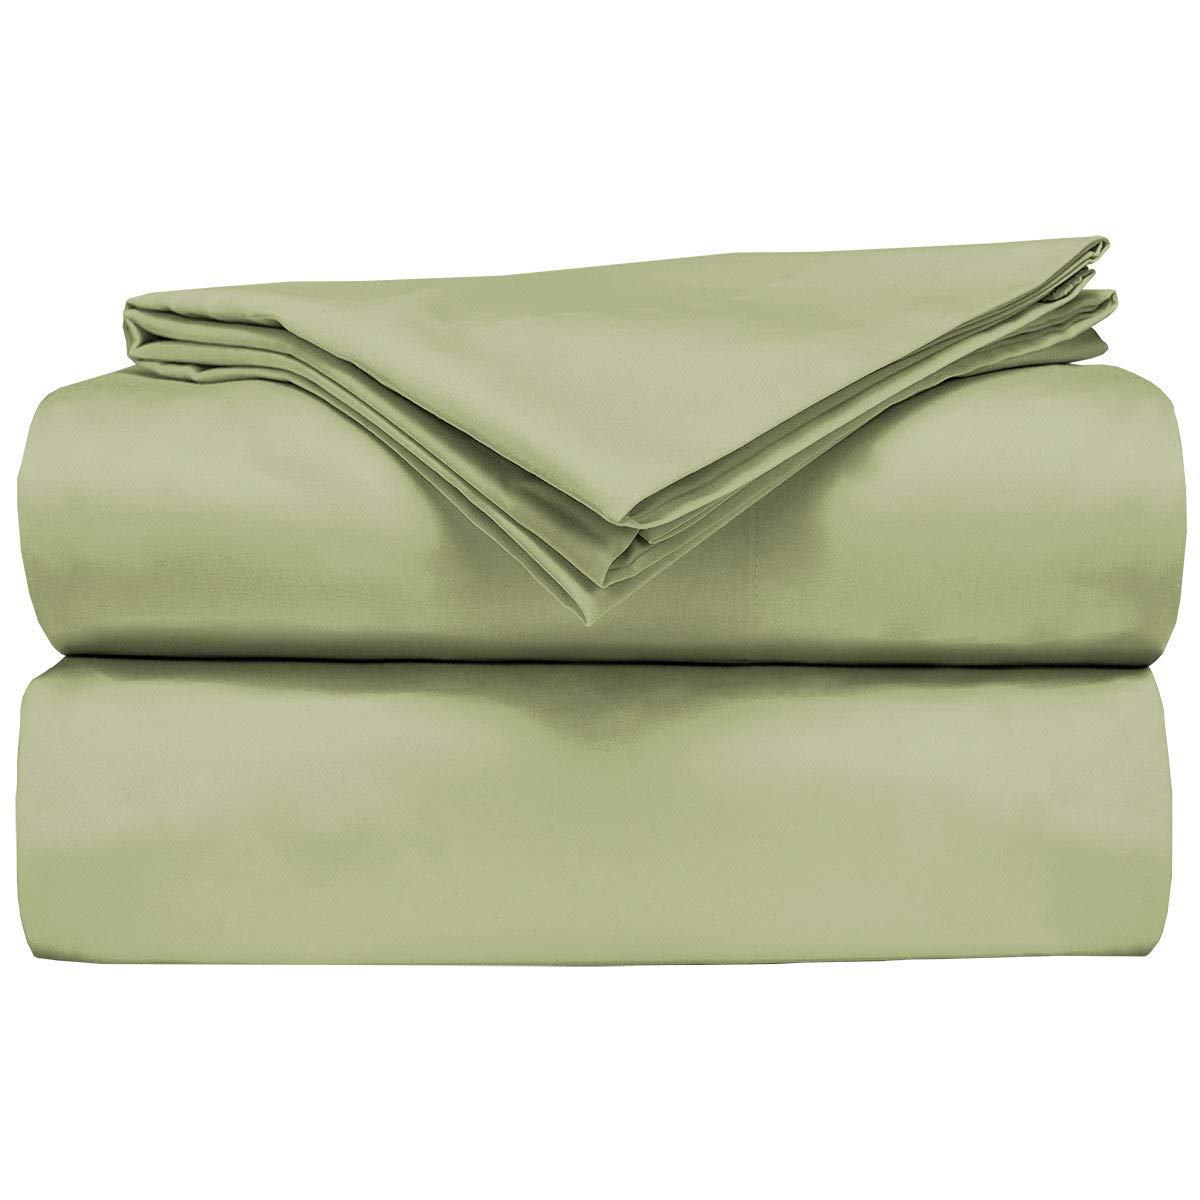 AB Lifestyles 34x75 Camper RV Sheet Set BUNK size 100% cotton Color: Sage Green by AB Lifestyles